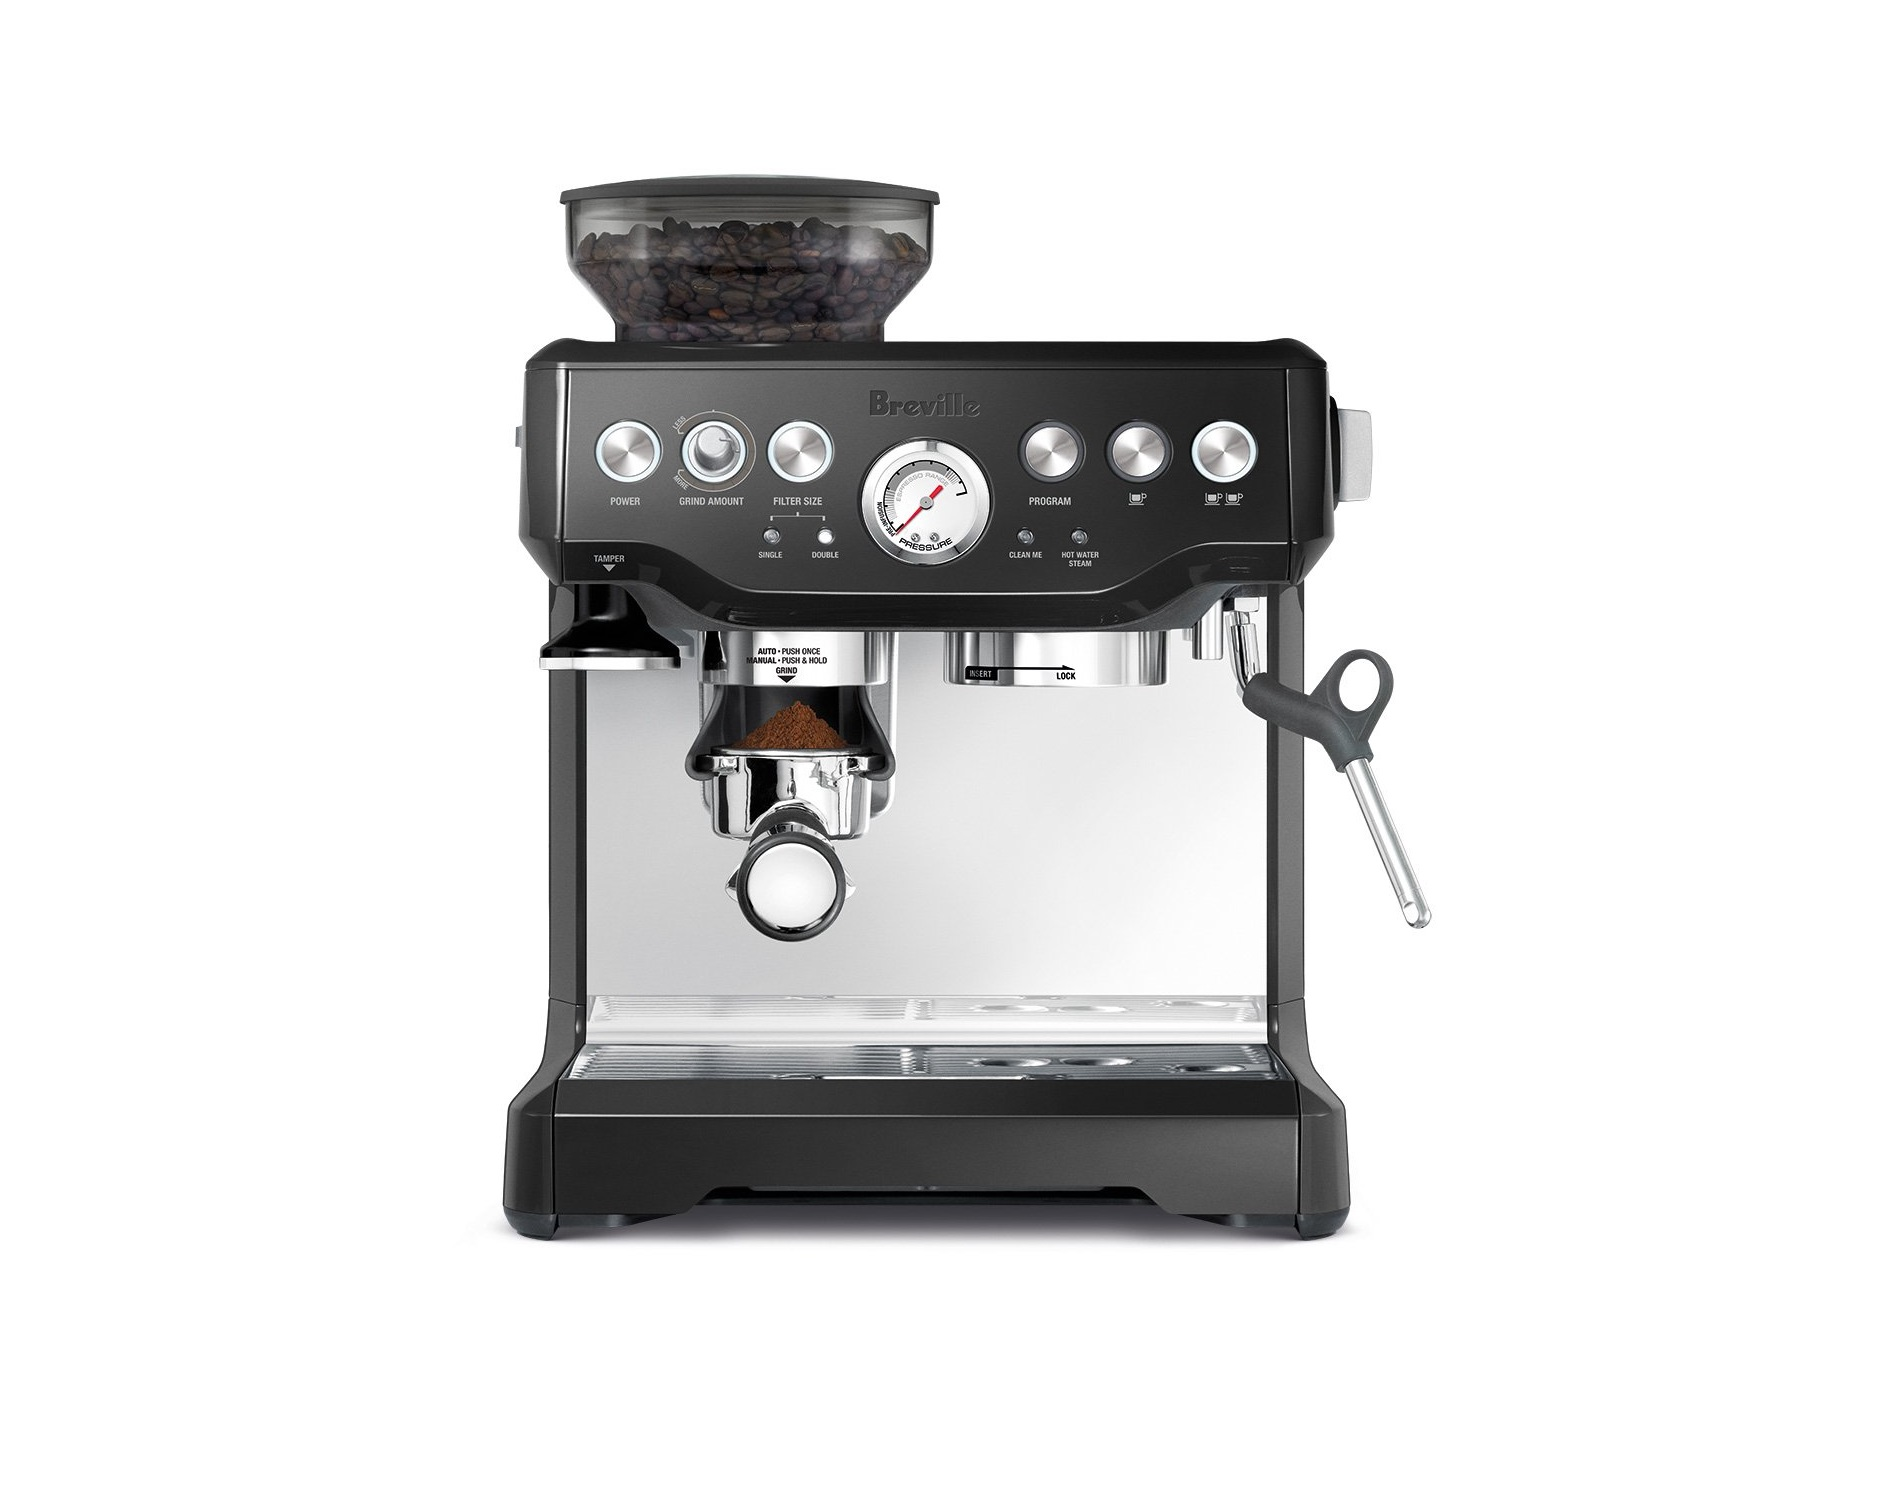 Top 5 Best Breville Espresso Machines Review in 2020